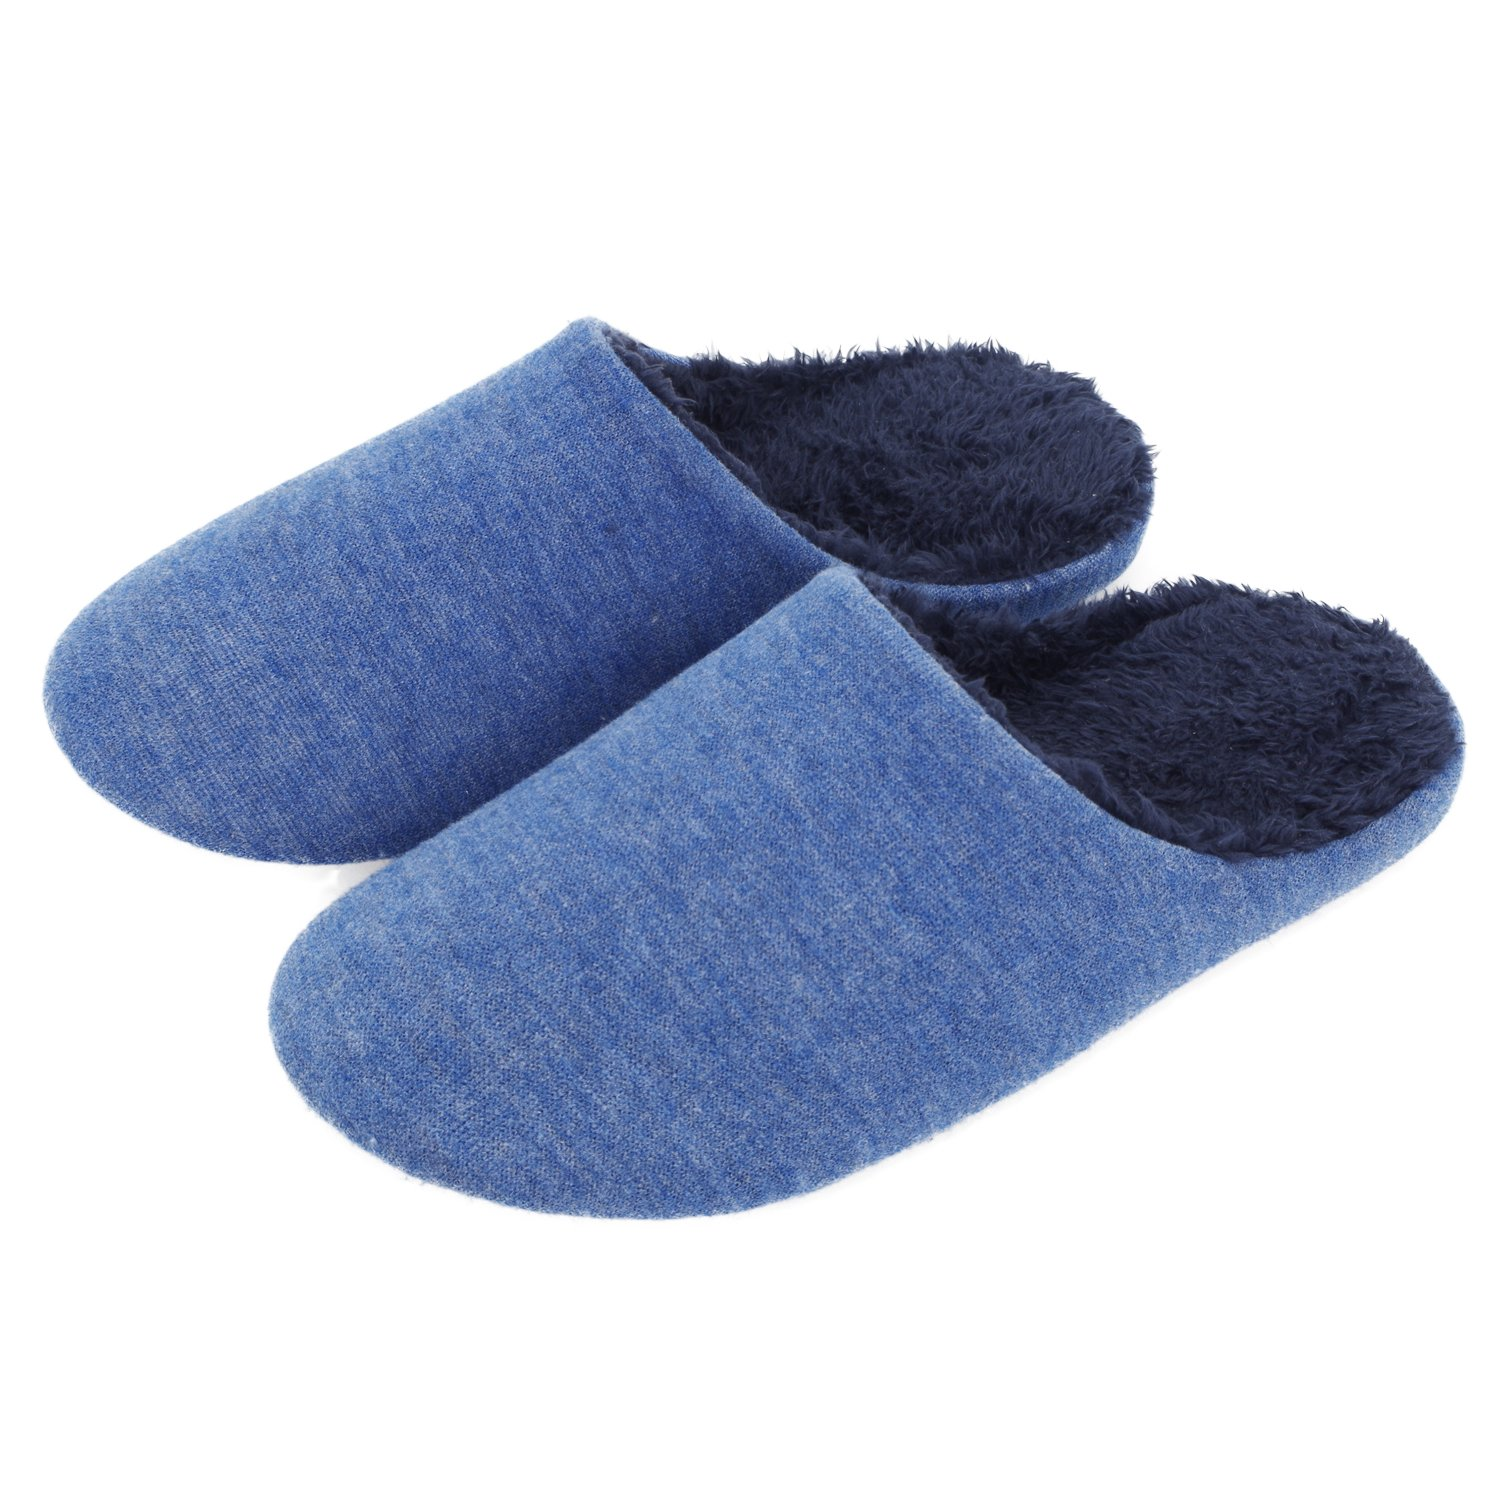 Moodeng Couple Casual Indoor Slippers Non-Slip House Slide Shoes Men and Women Sandals Lightweight Ladies Home Slipper